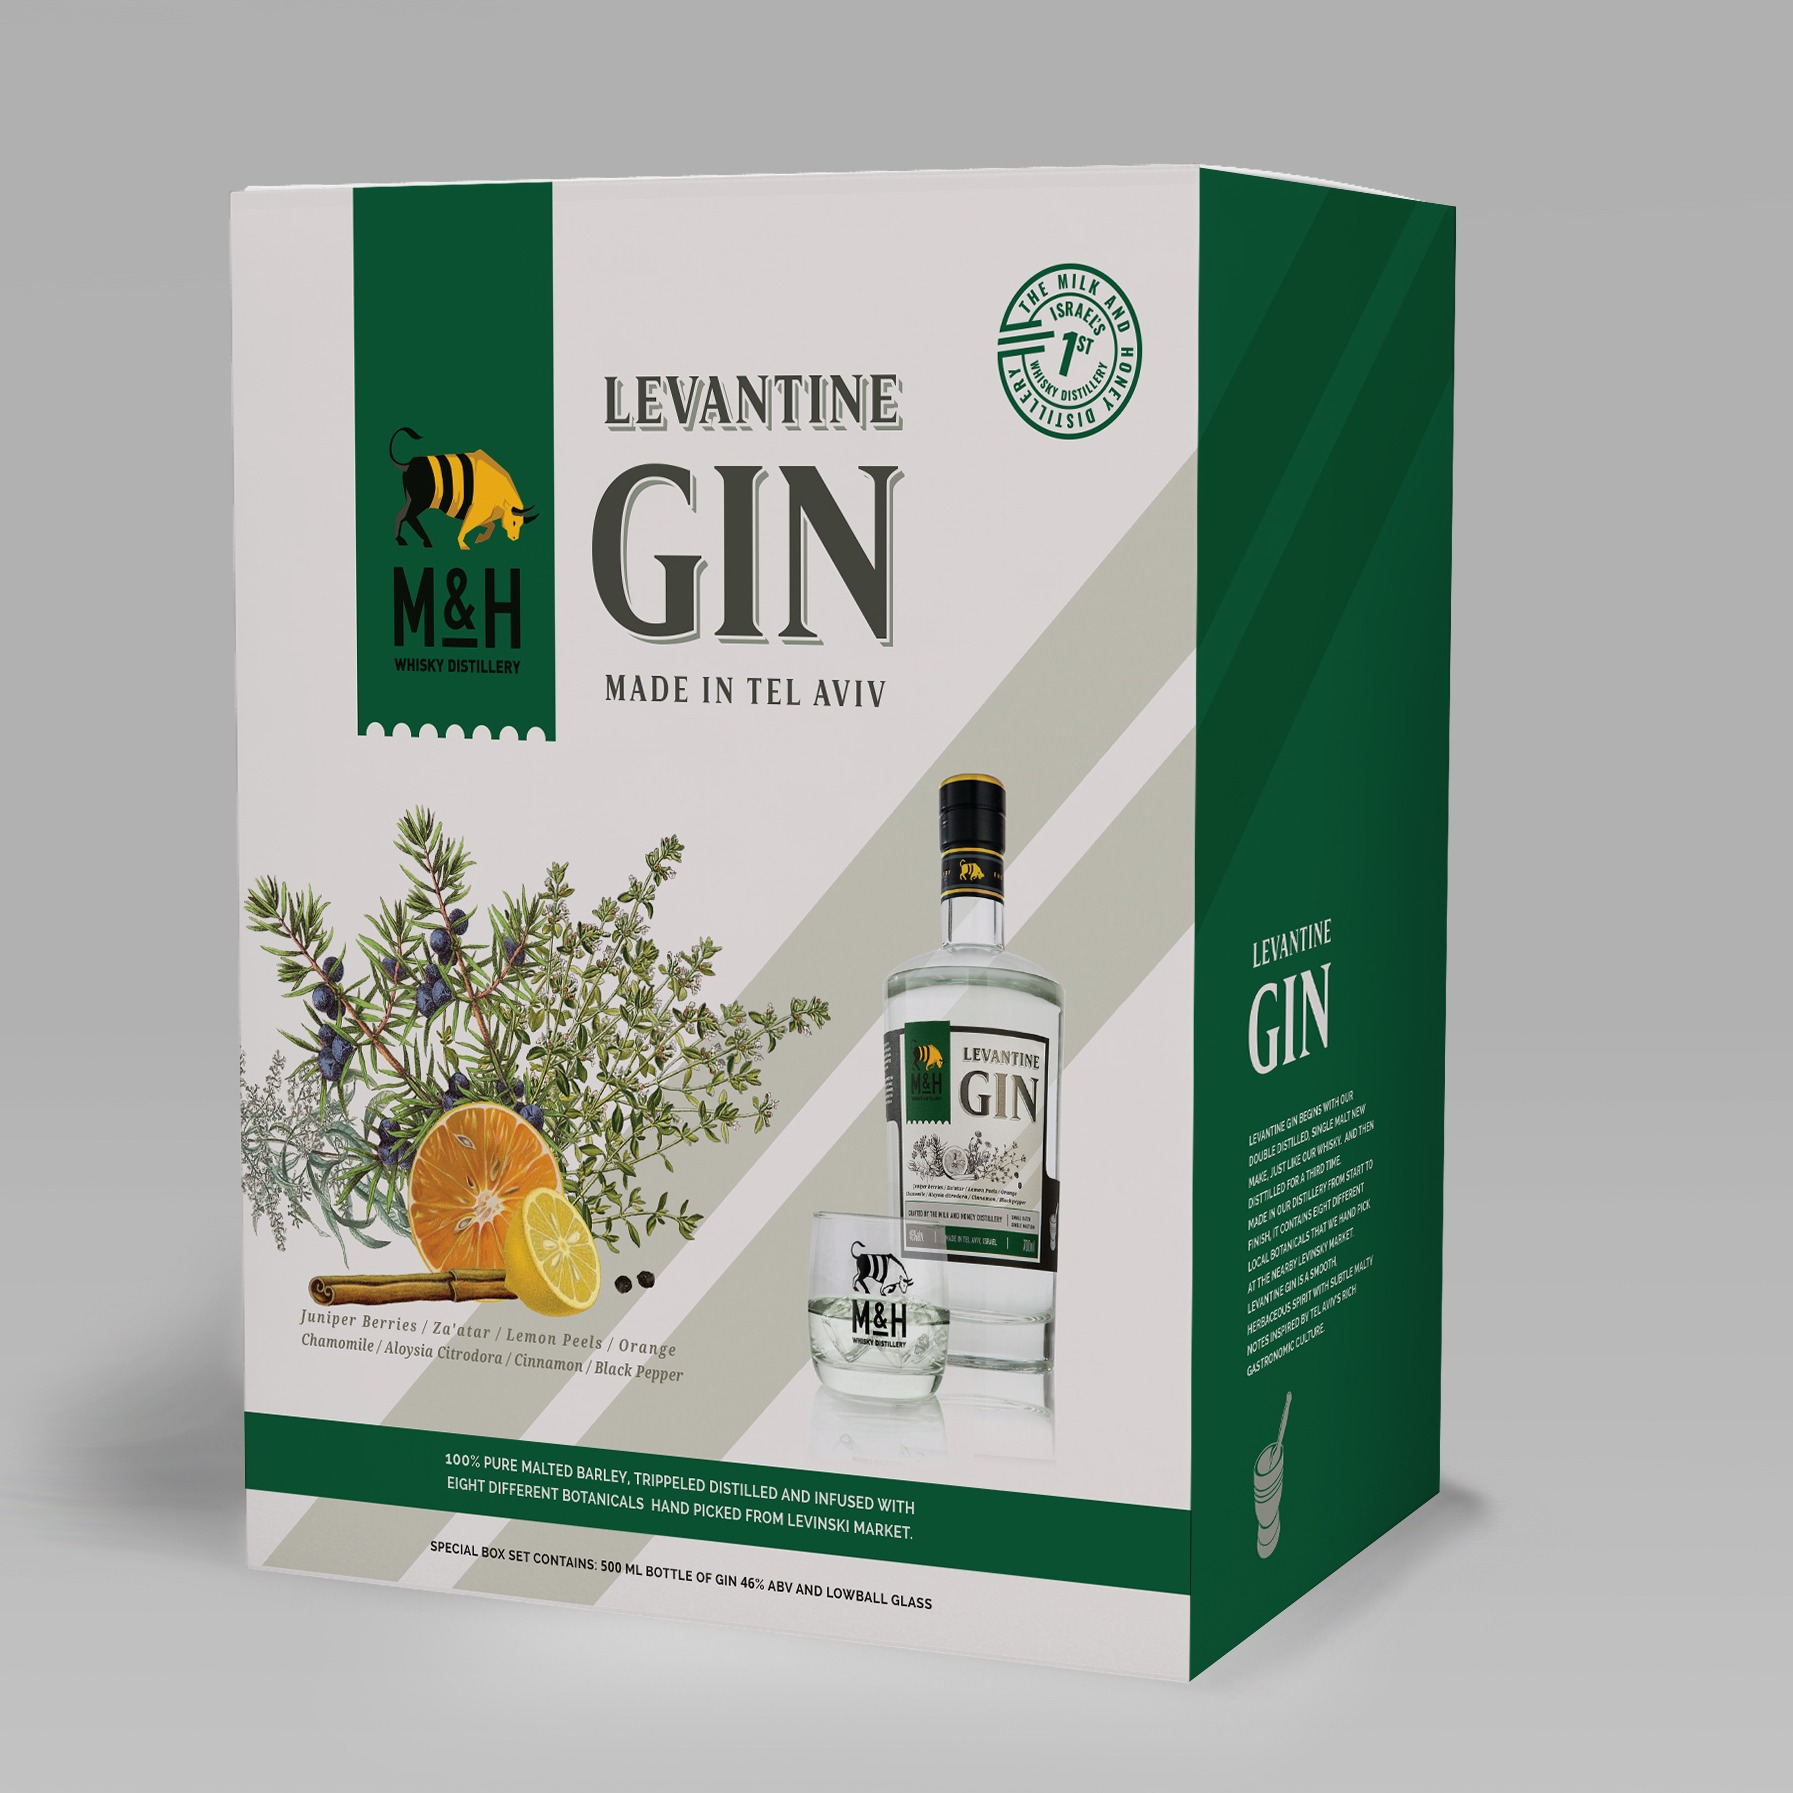 Levantine Gin plan b creative 199 שח